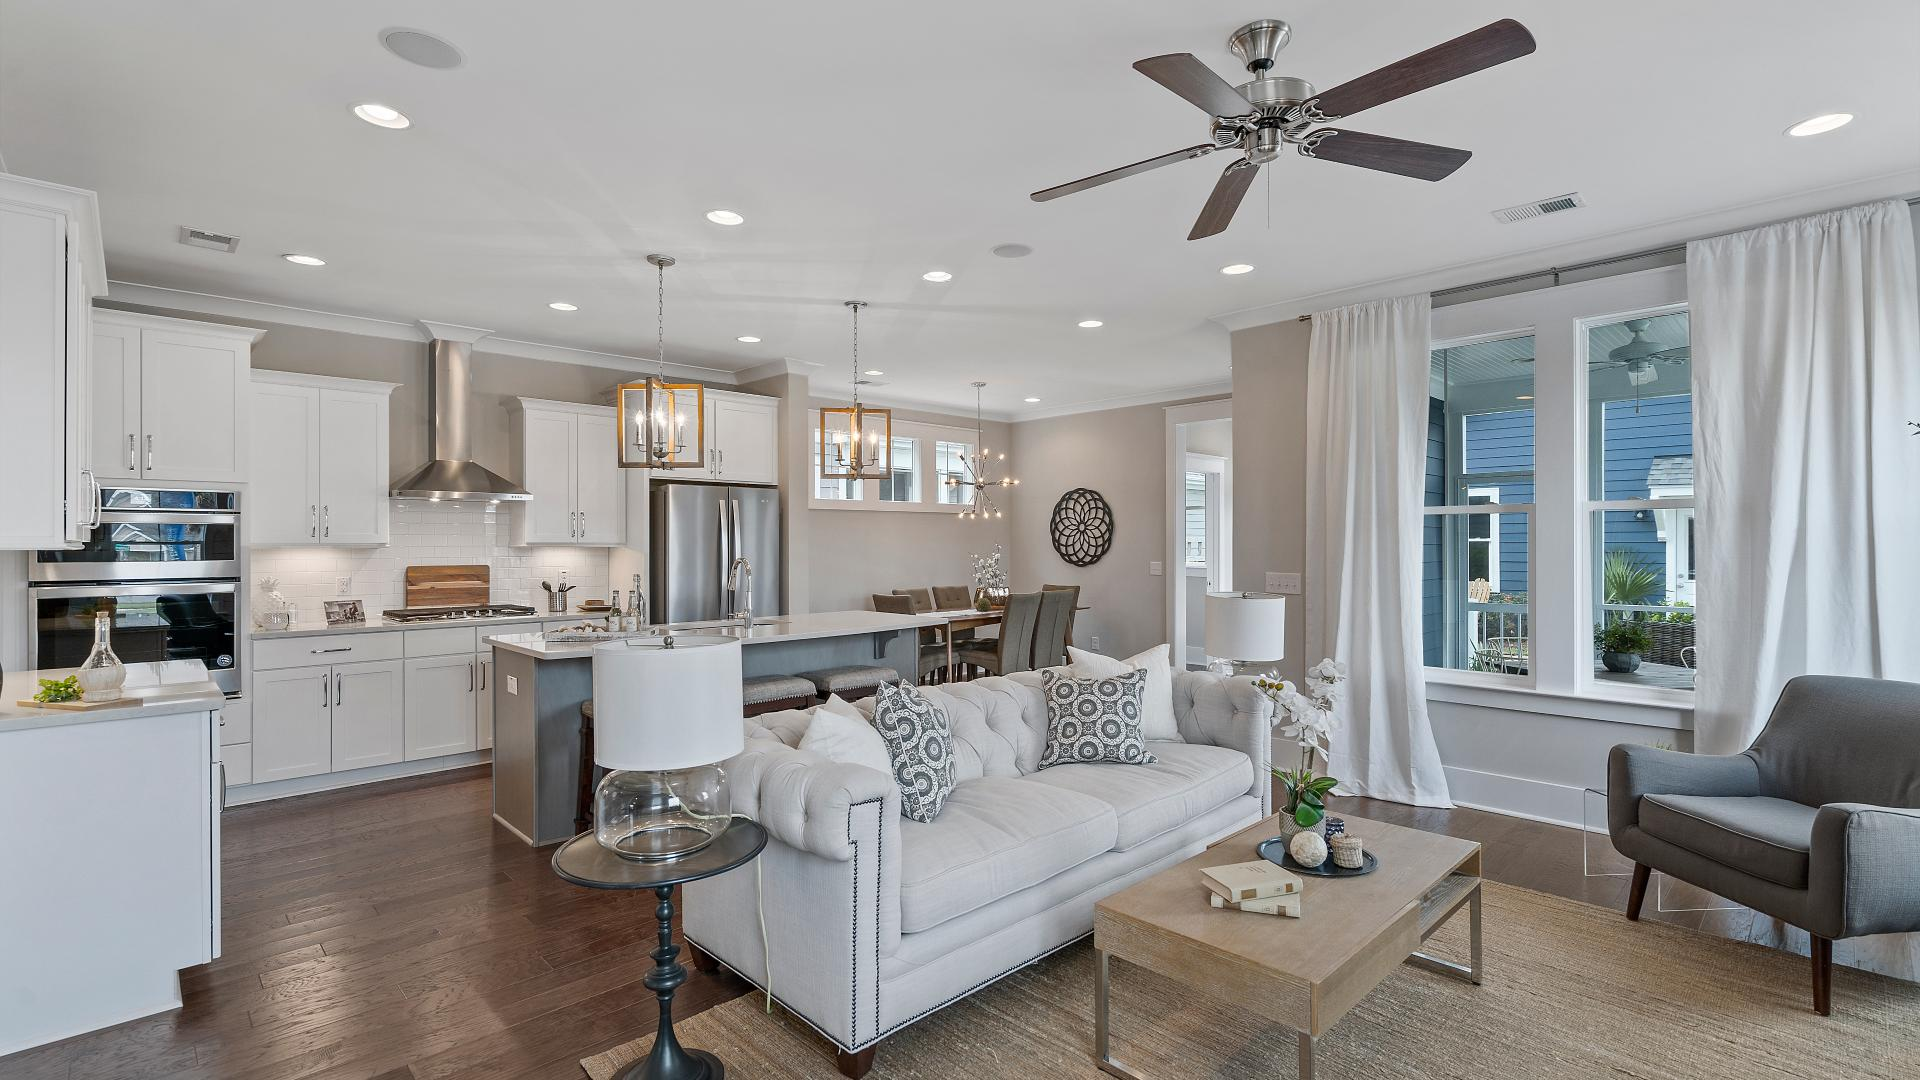 Open concept great room and spacious kitchen ideal for entertaining